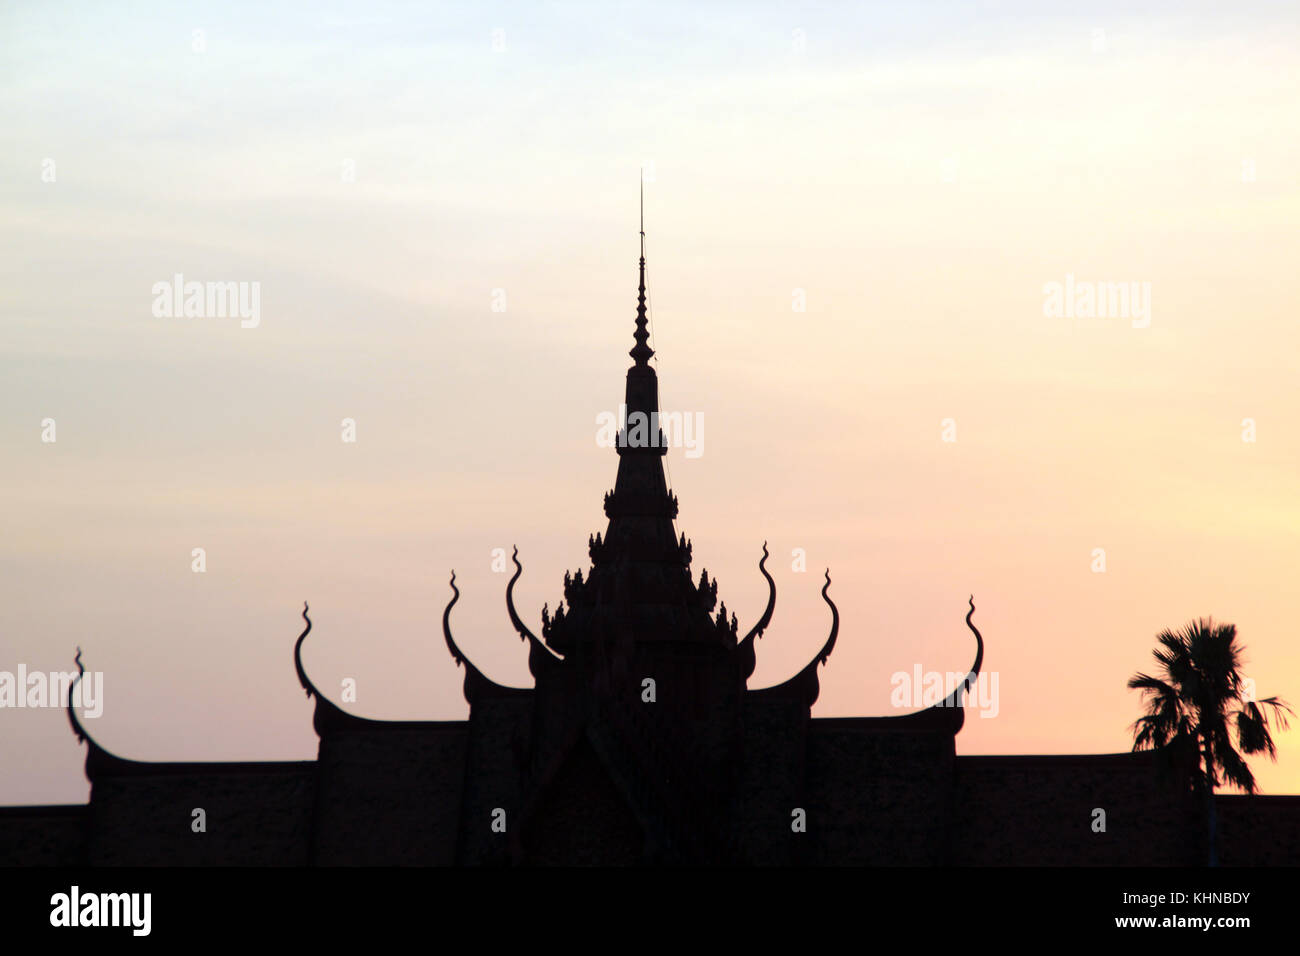 Silhouete of pagoda and palm tree in Cambodia - Stock Image